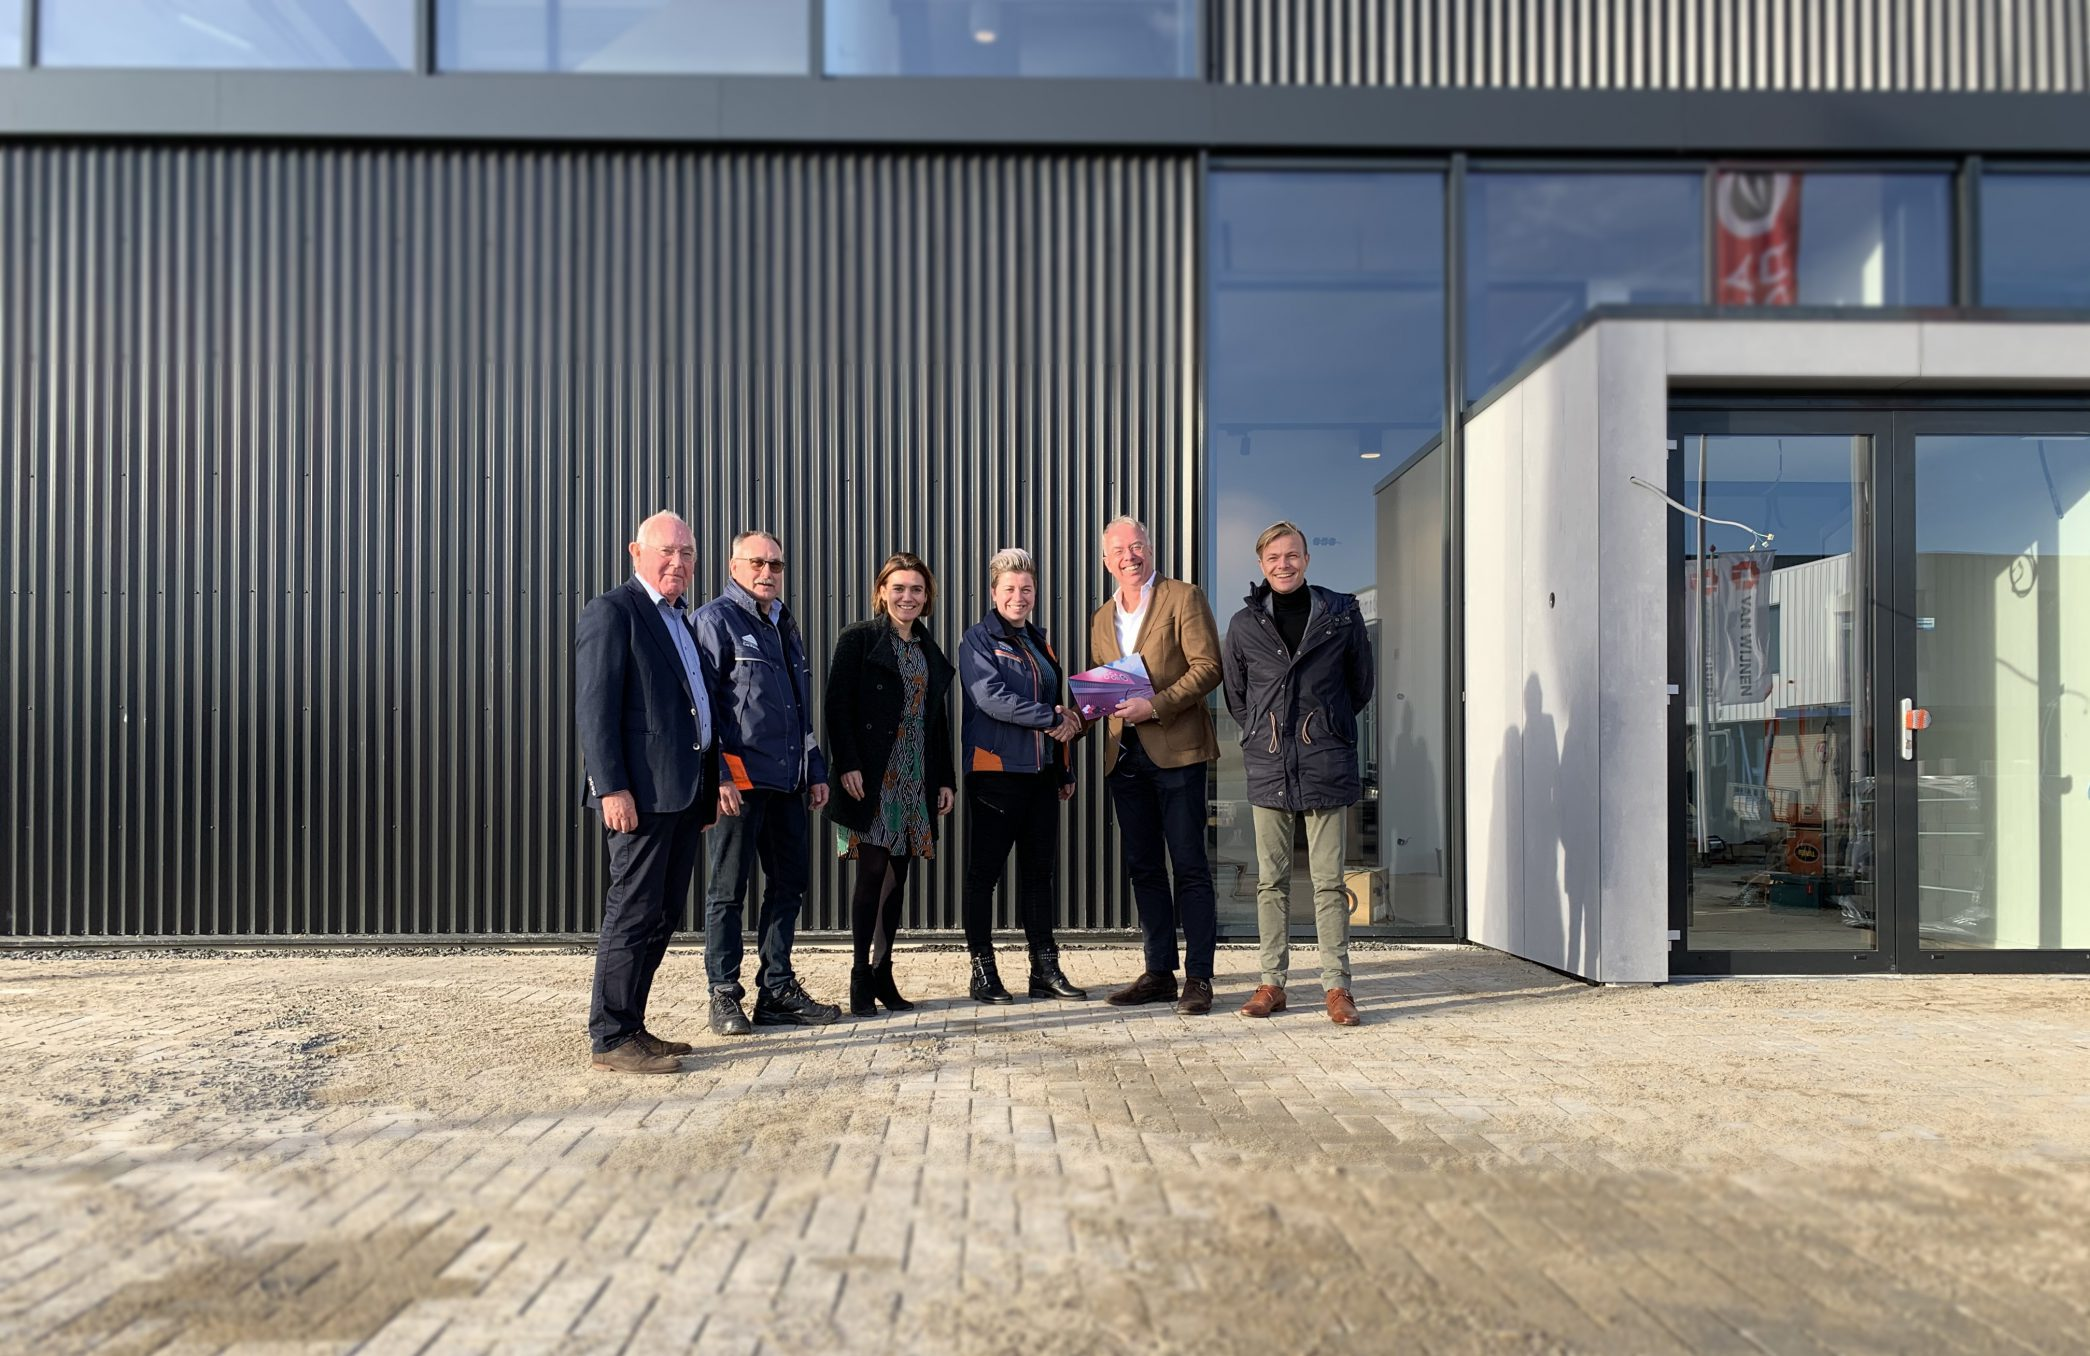 Oplevering bedrijfspand Mocca d'Or Zwolle